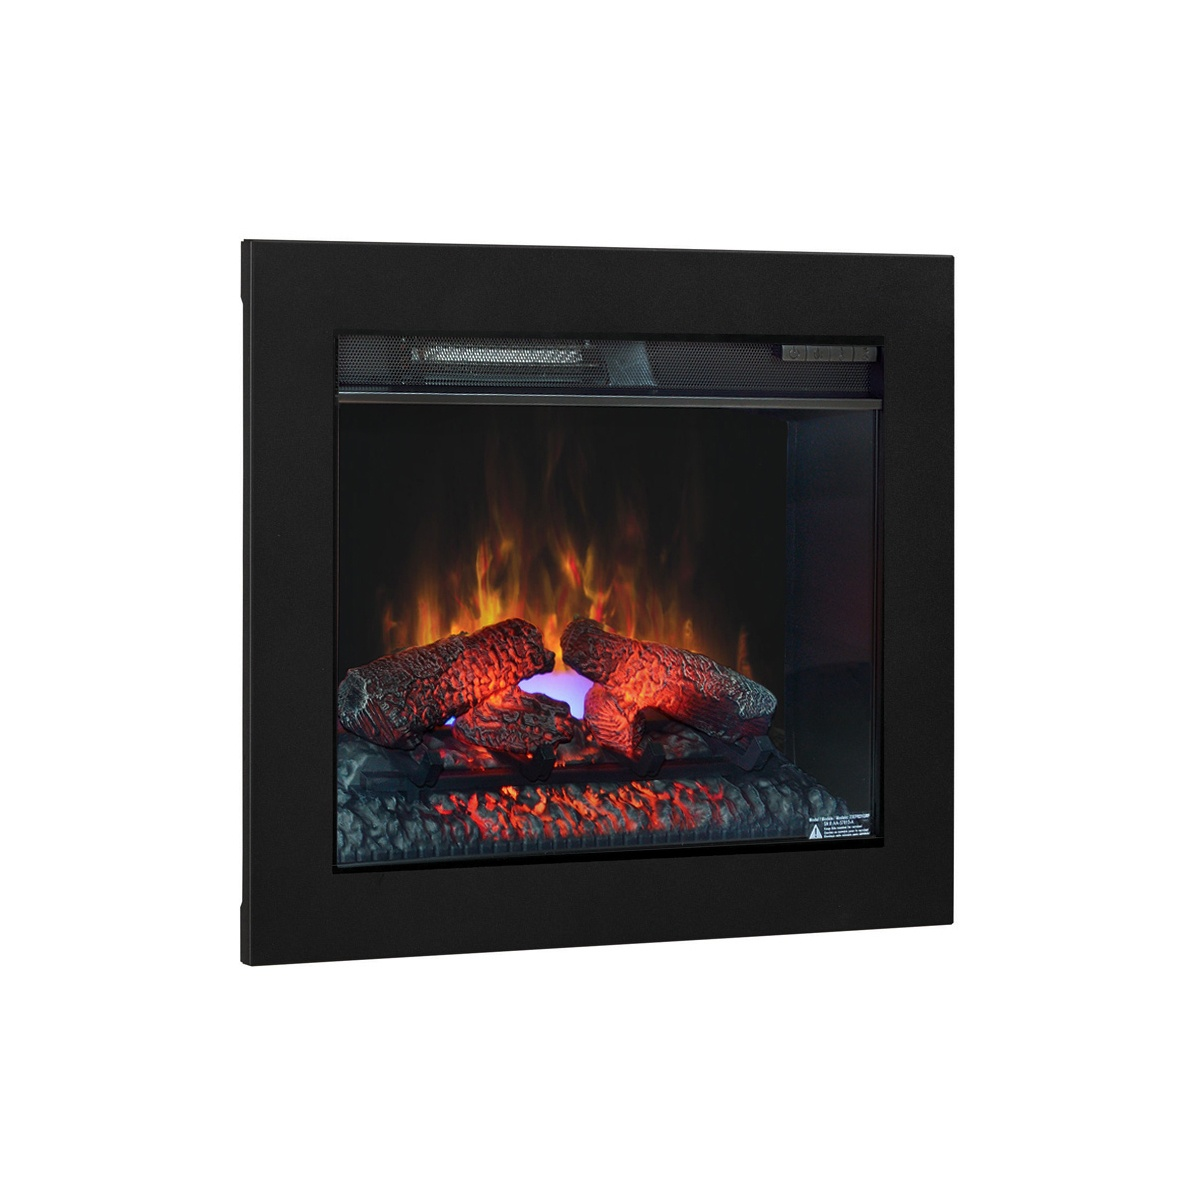 23 inch classic flame electric fireplace insert with black metal finishing trim